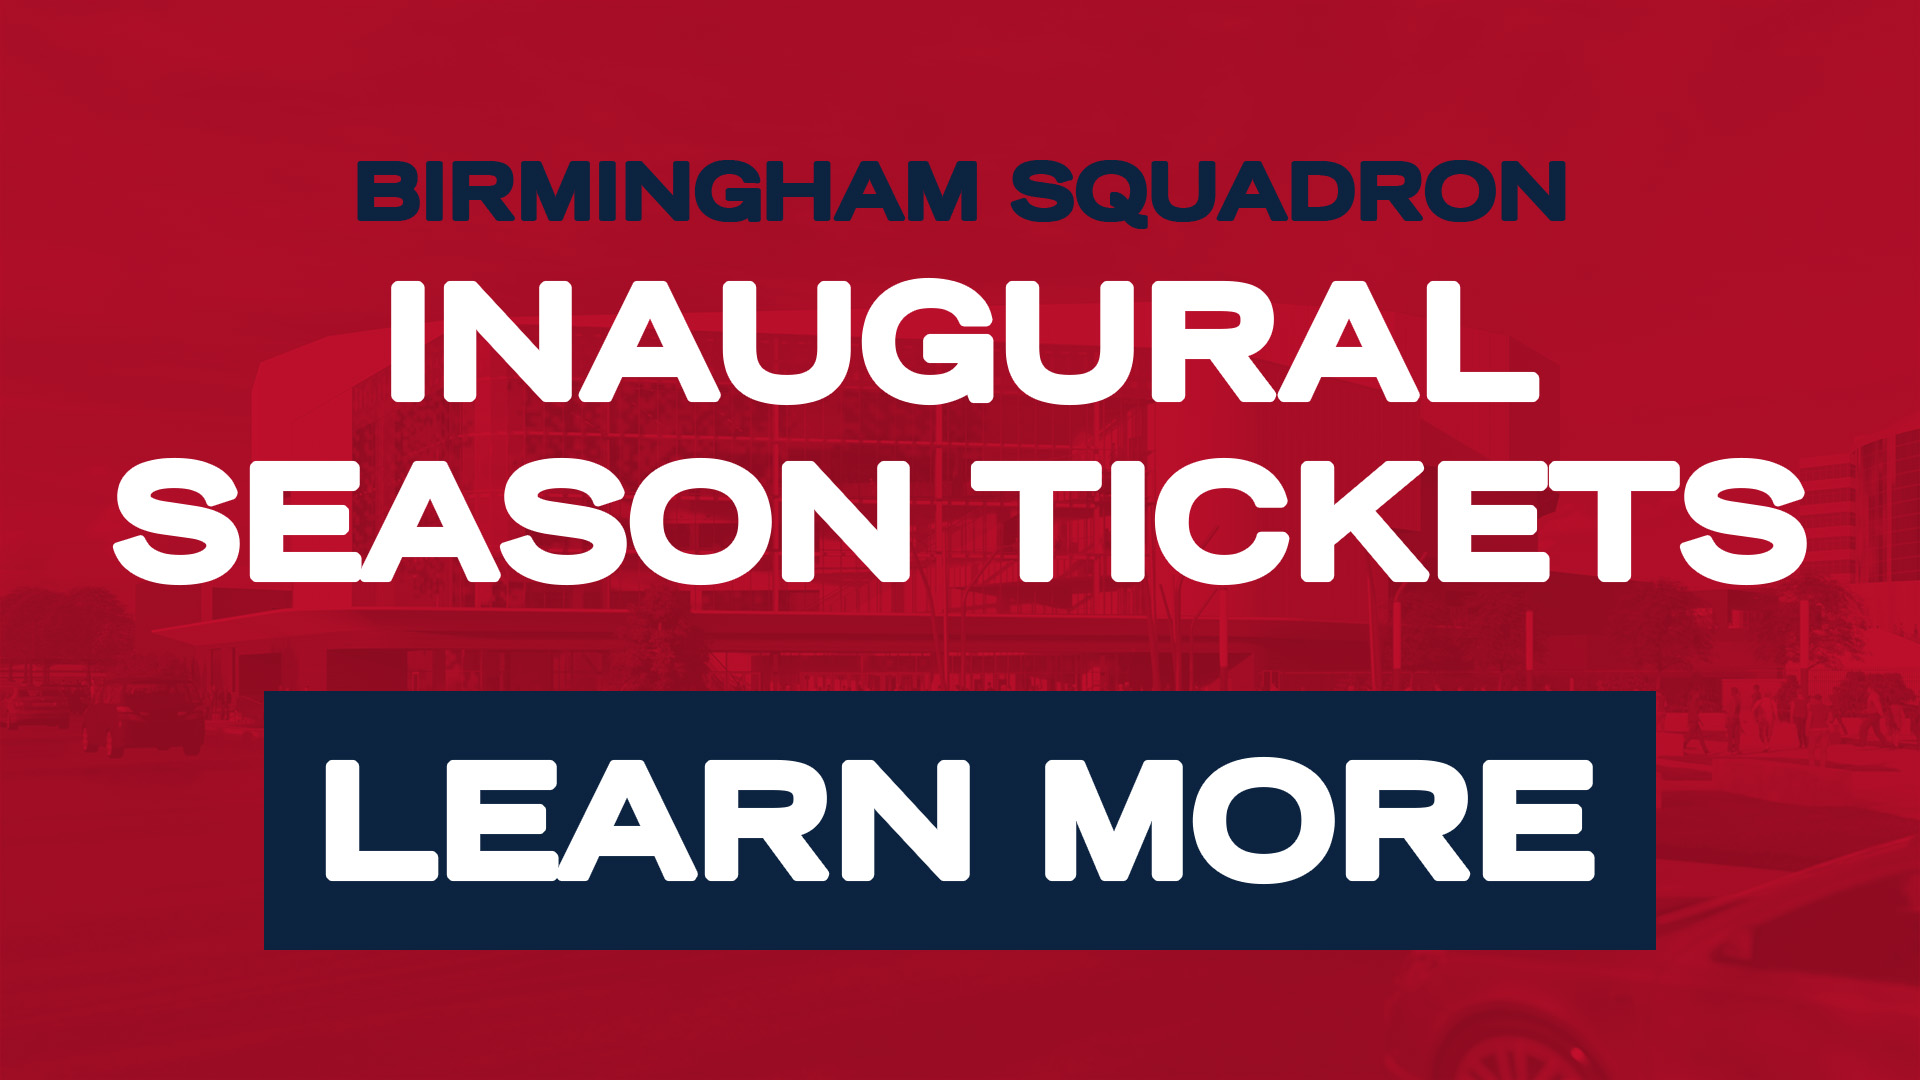 Learn more about Birmingham Squadron Season Tickets